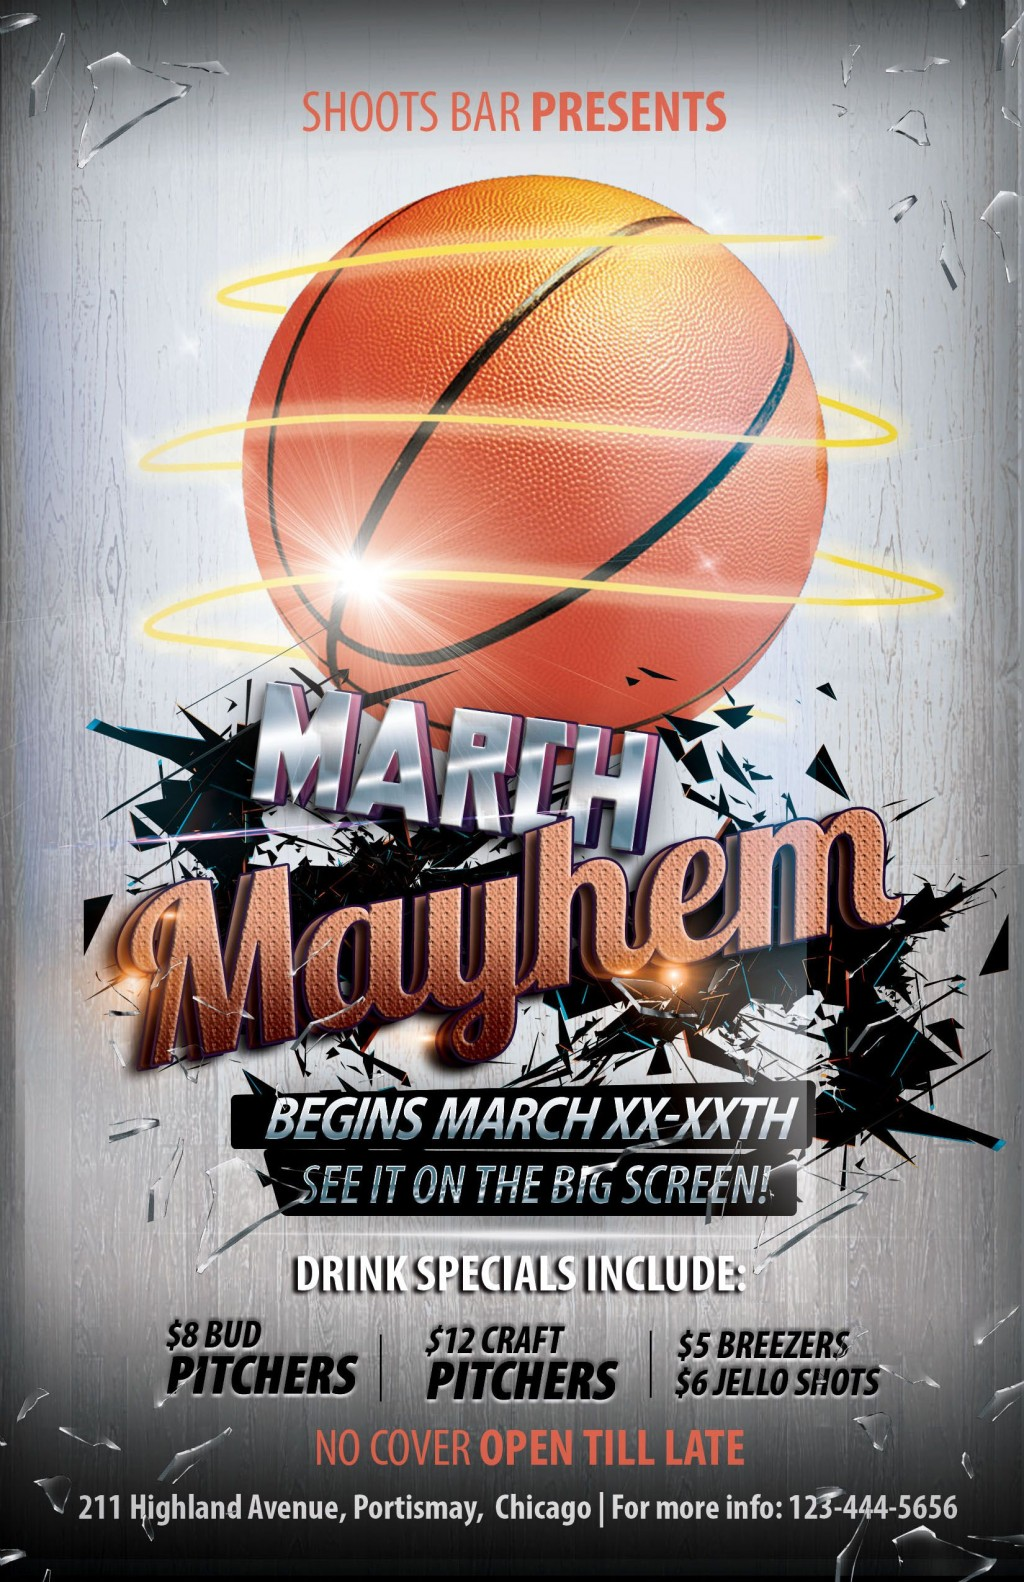 005 Simple Basketball Flyer Template Free Highest Clarity  Brochure Tryout CampLarge